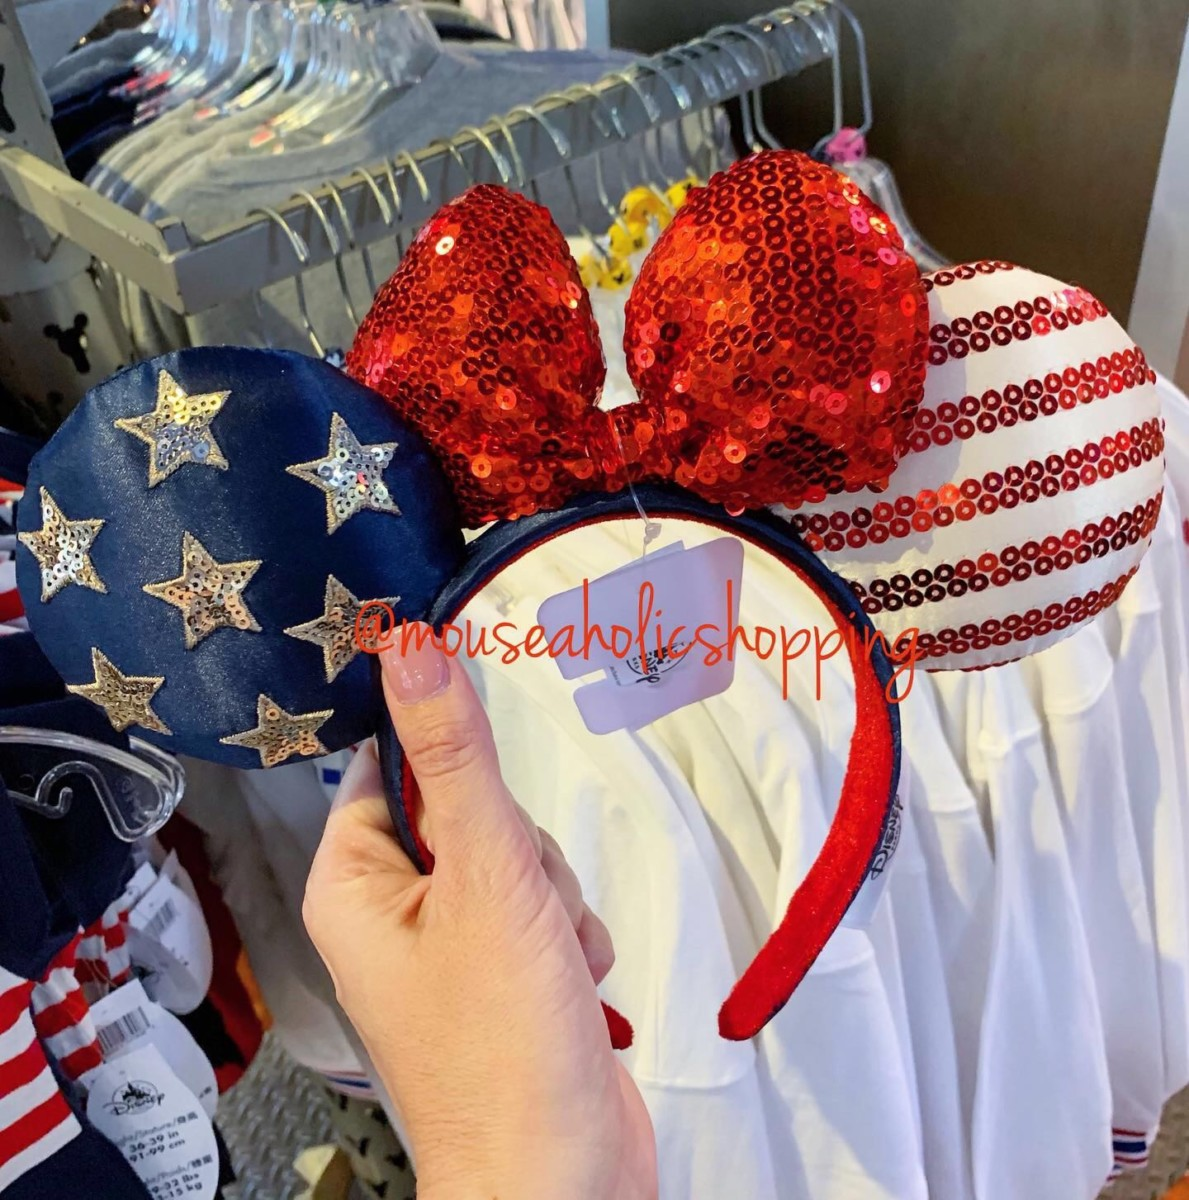 Two New Mouse Ear Headbands hit WDW! #disneystyle 2